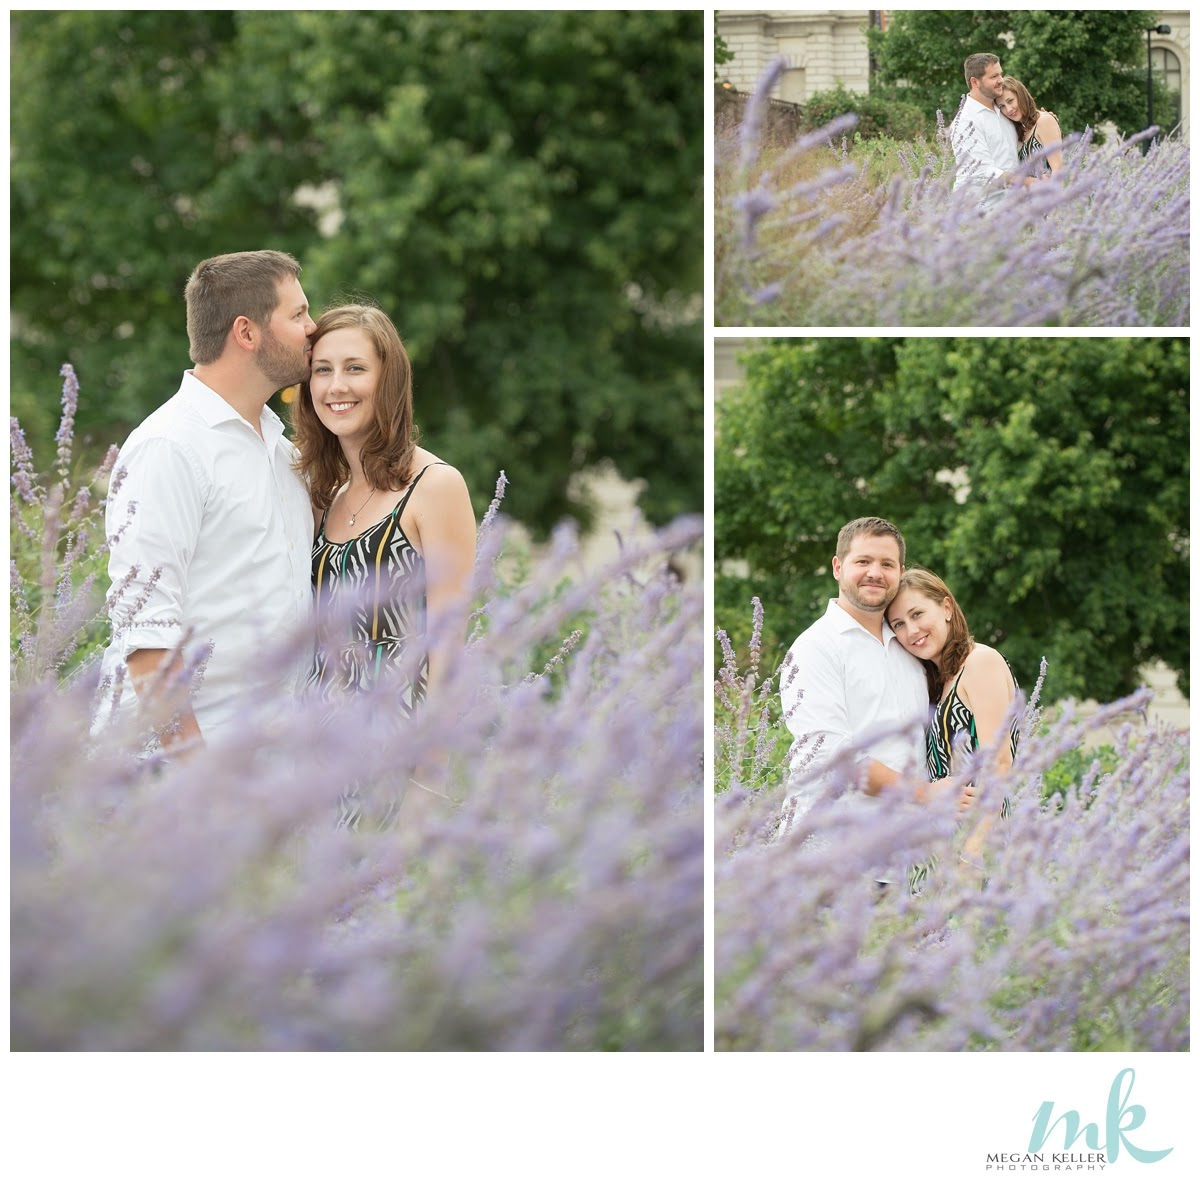 Kelly and Frank Engagement Session Kelly and Frank Engagement Session 2014 08 04 0001